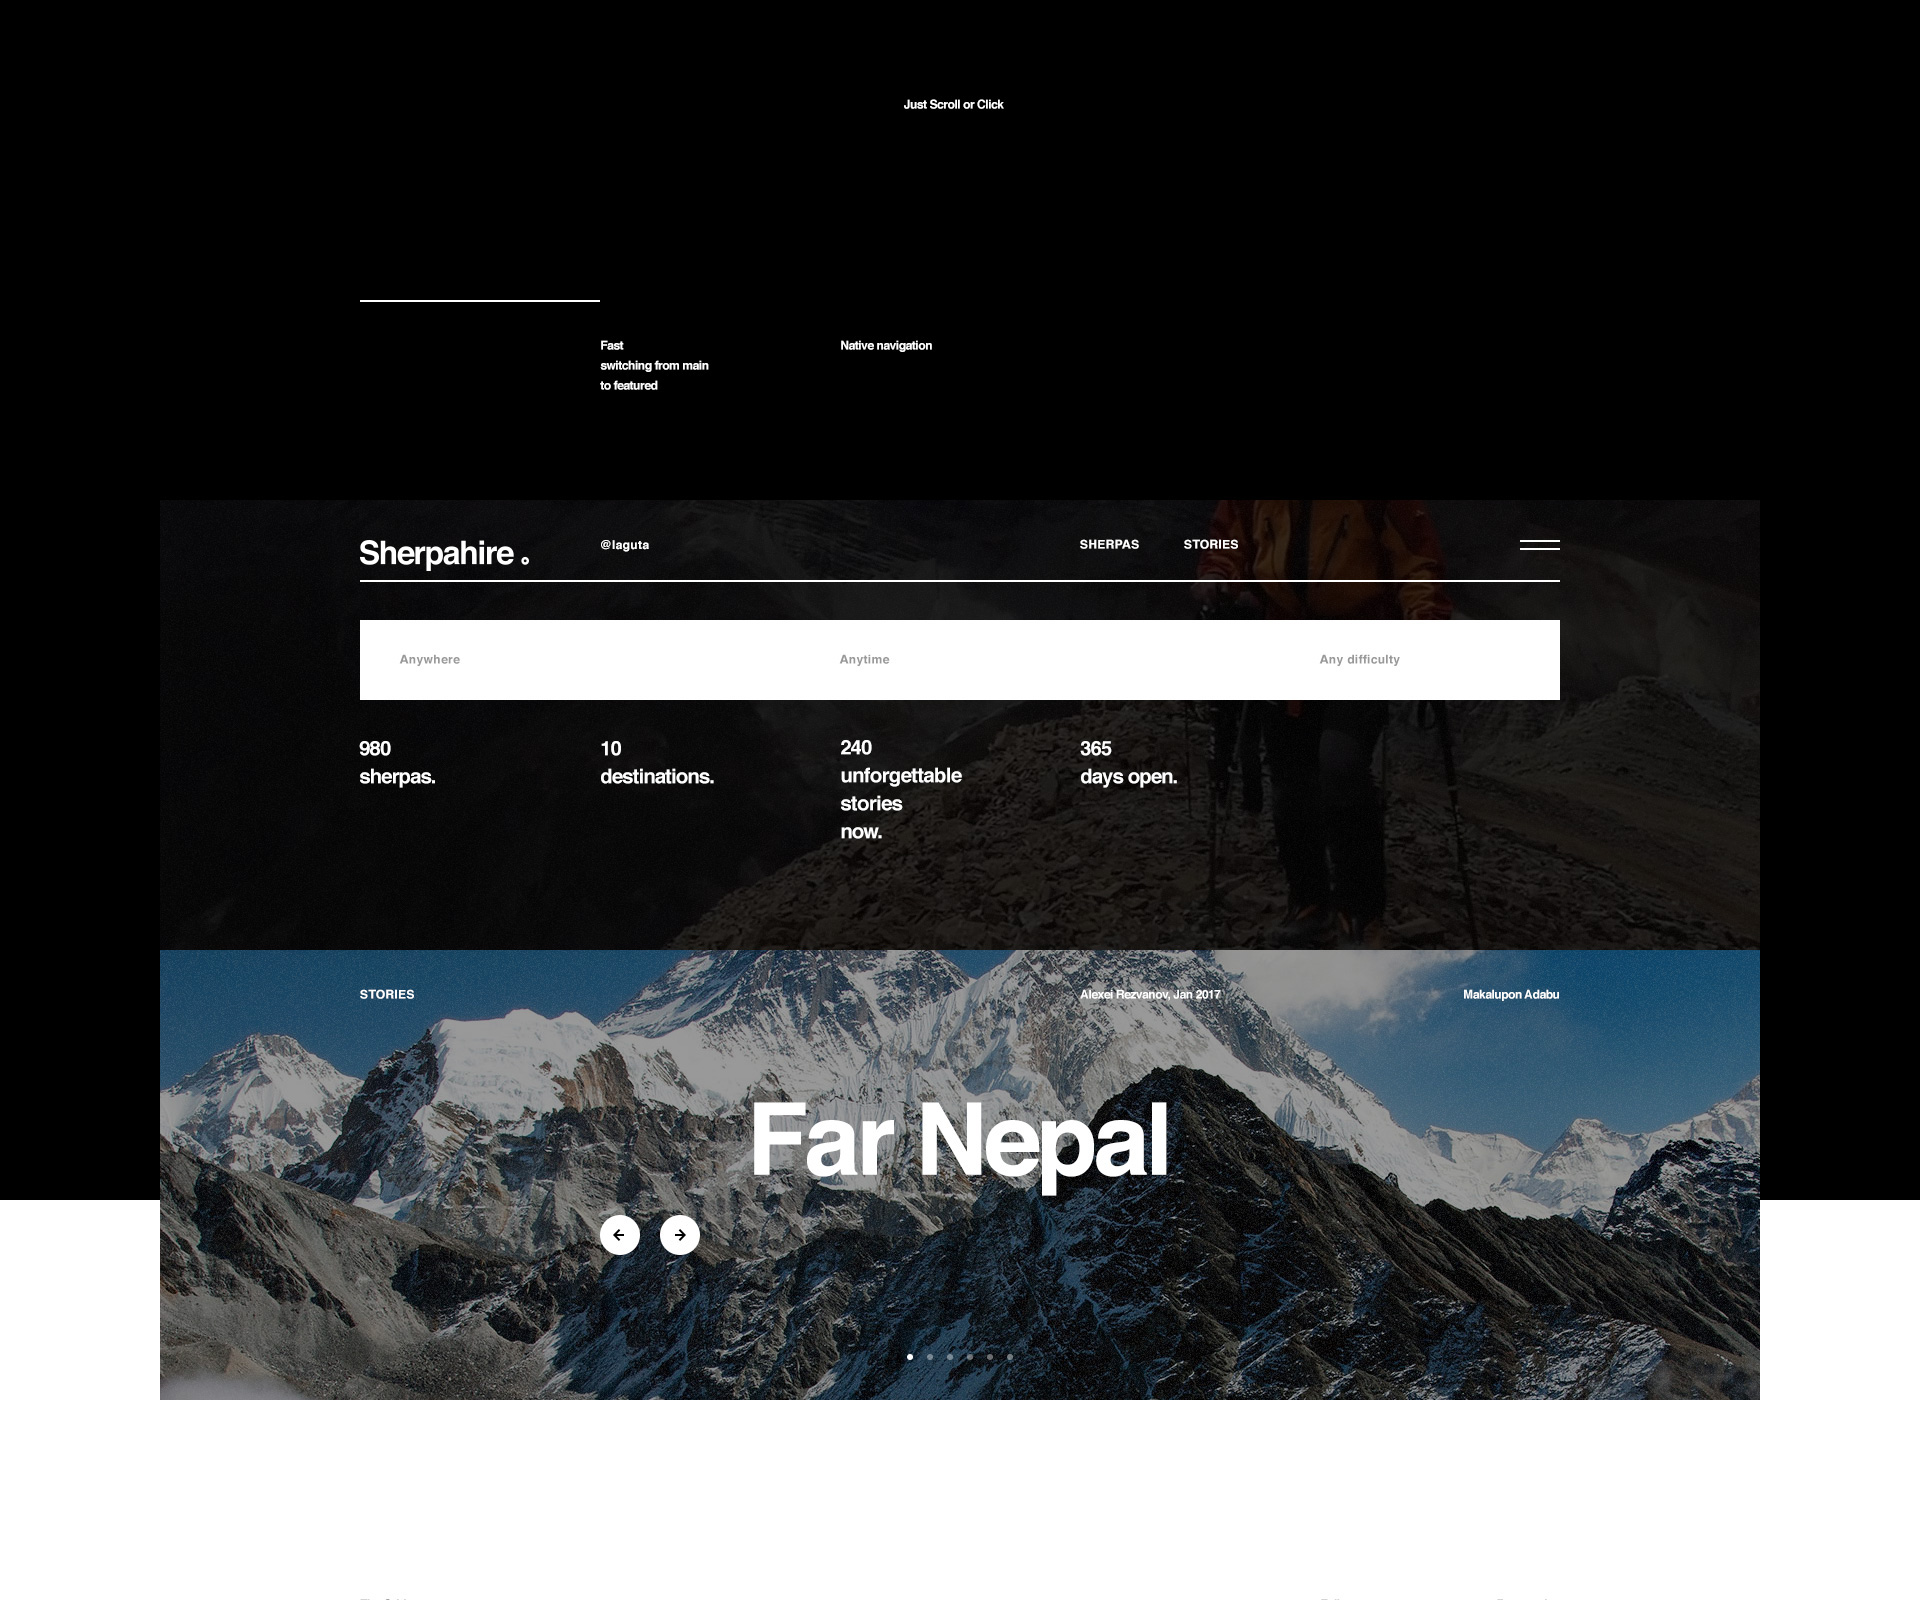 Interaction Design & UI/UX: Sherpahire.com